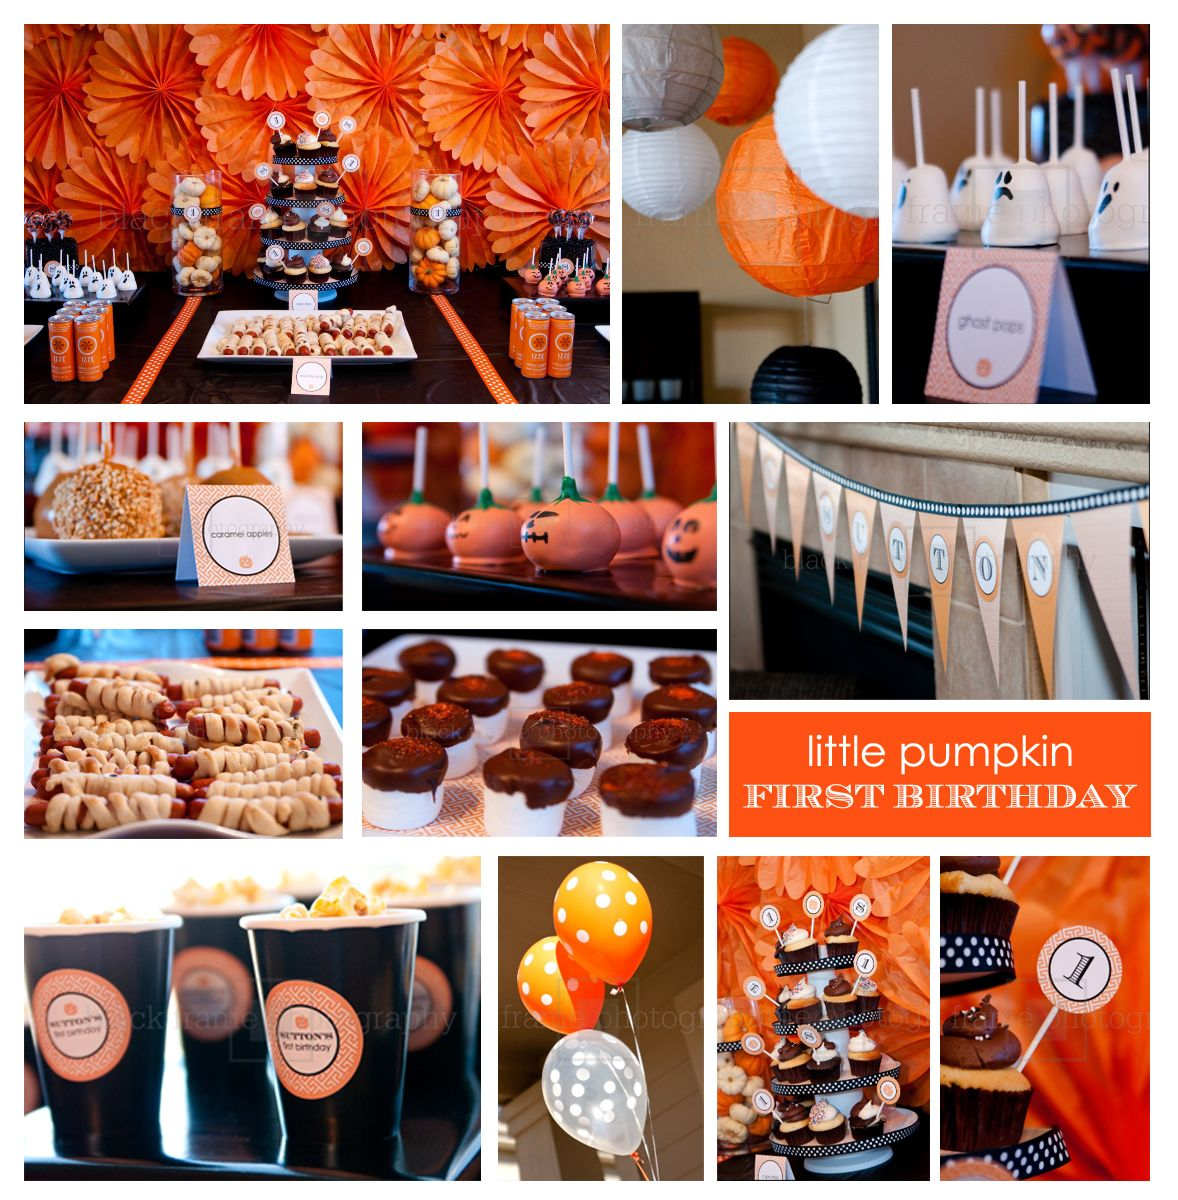 17 Best images about Halloween Party Inspirations on Pinterest ...